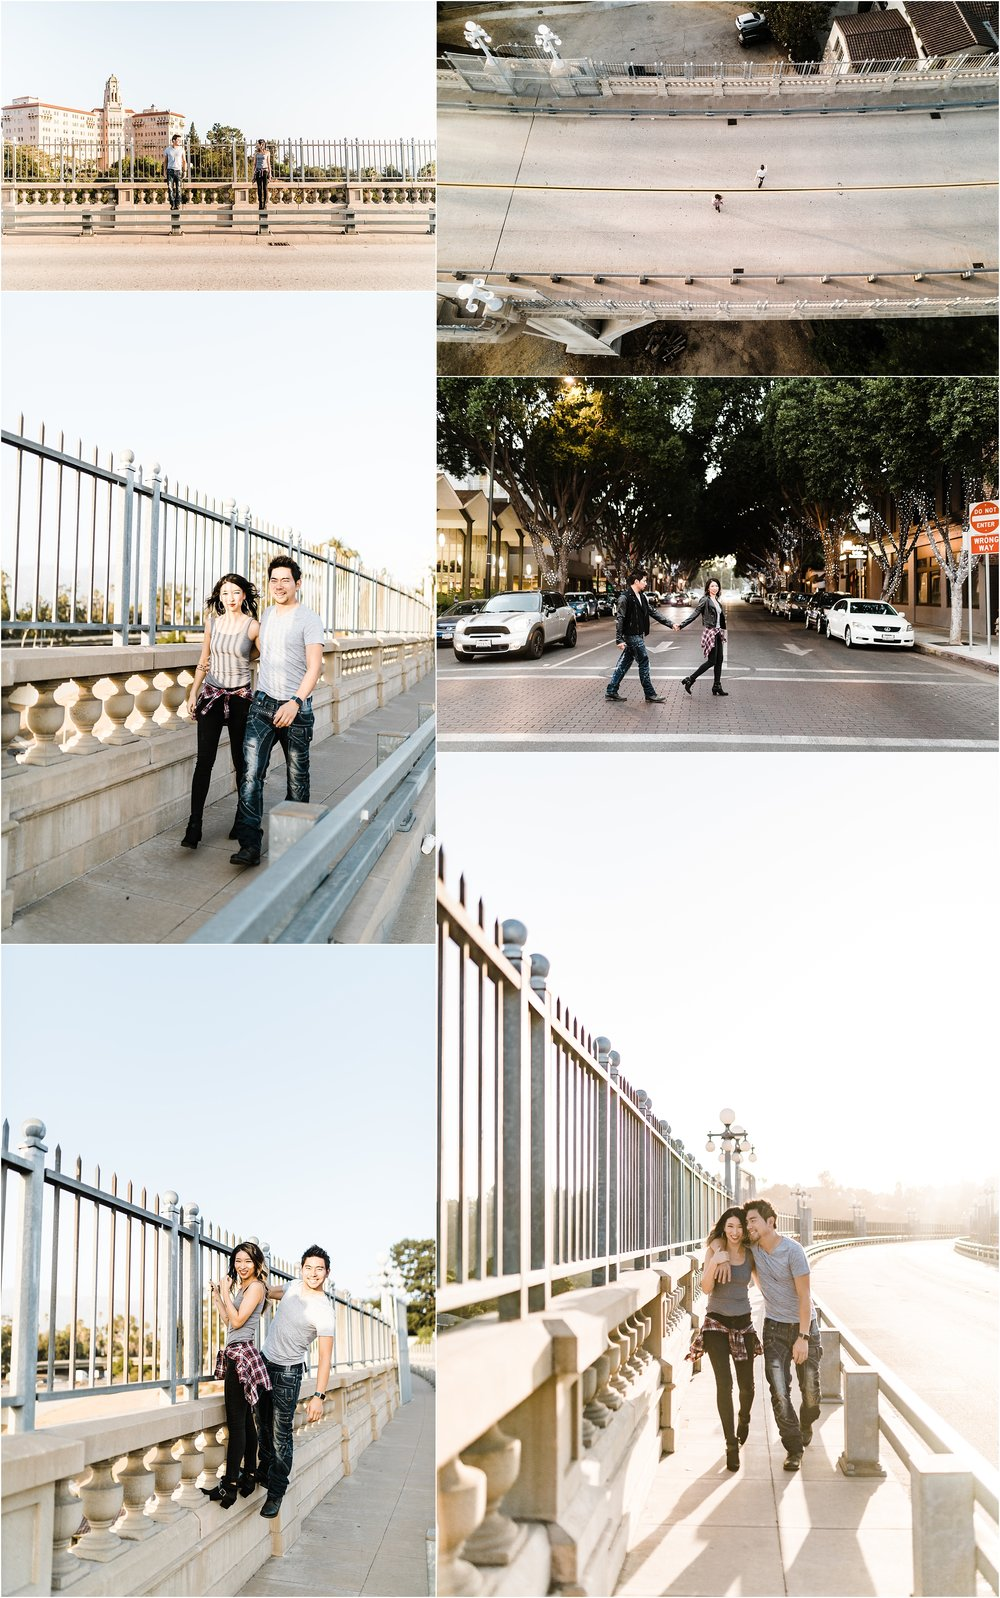 Colorado-Street-Bridge-Old-Town-Pasadena-Clarisse-Rae-Southern-California-Wedding-Photographer